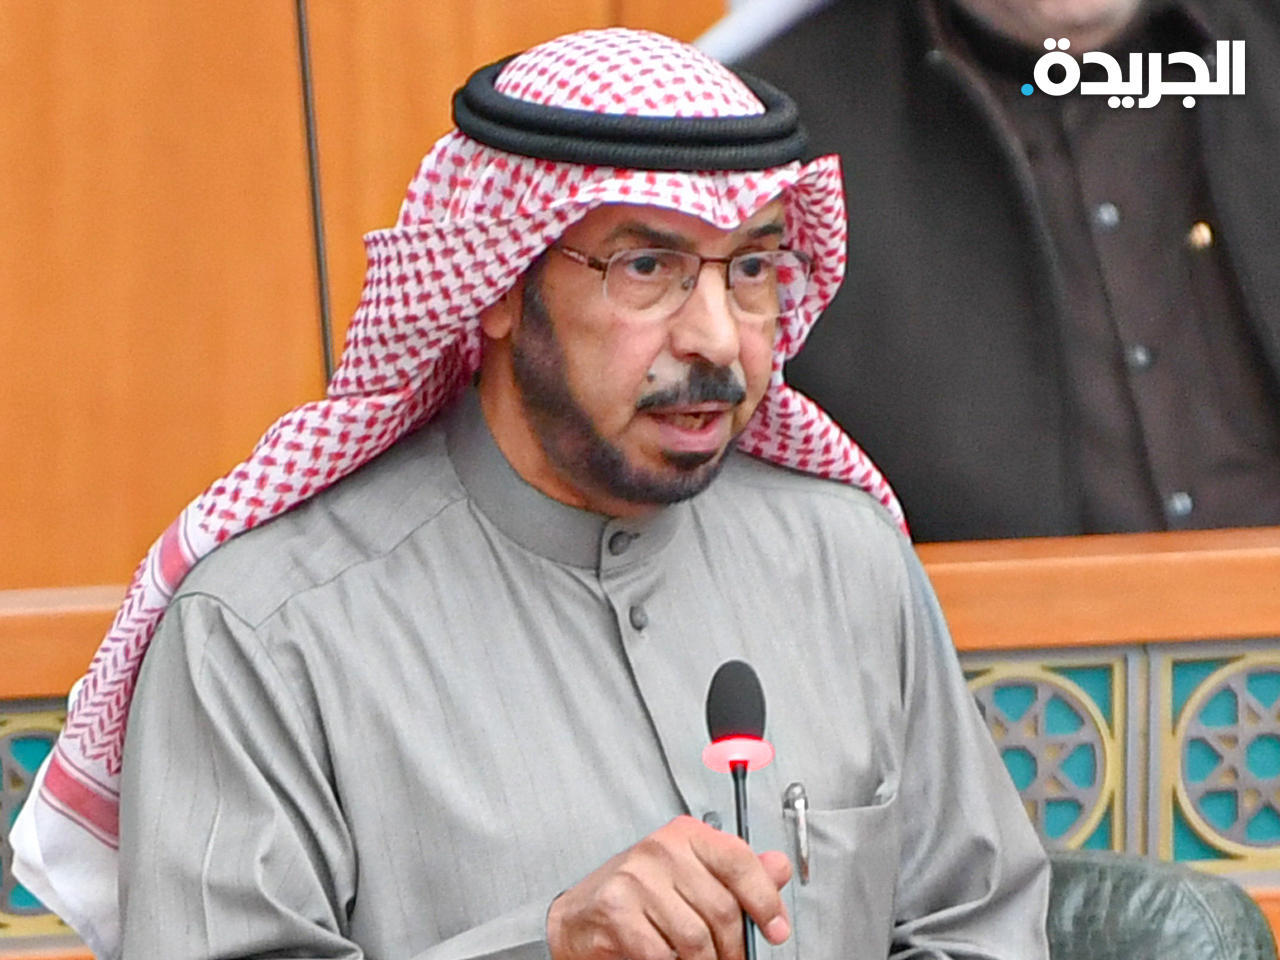 Saifi telephoned 38 MPs who supported the previous inquiry to boycott and topple the government section.